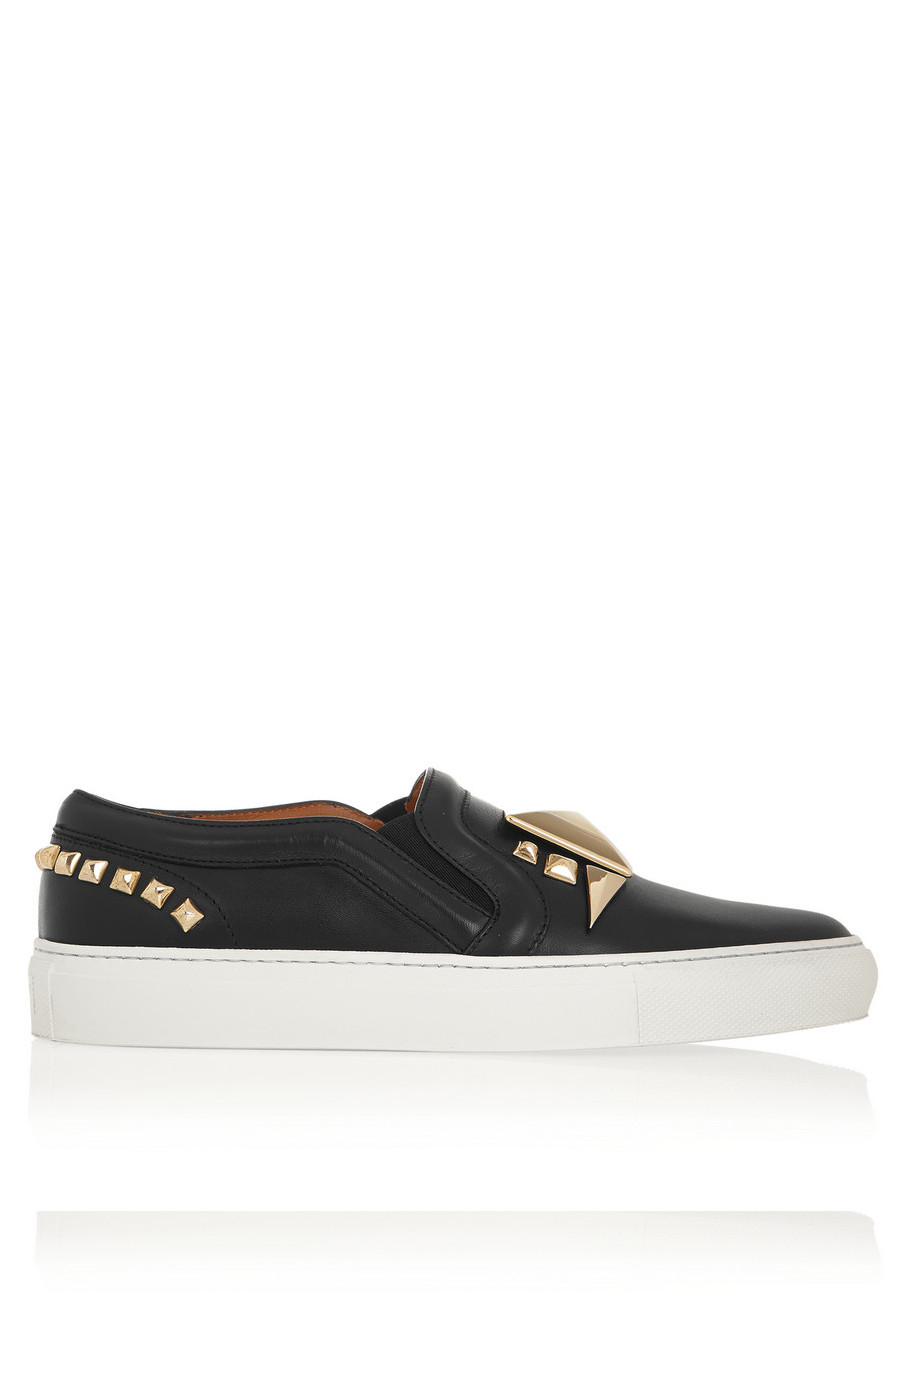 Givenchy - Slip-on (655 €)